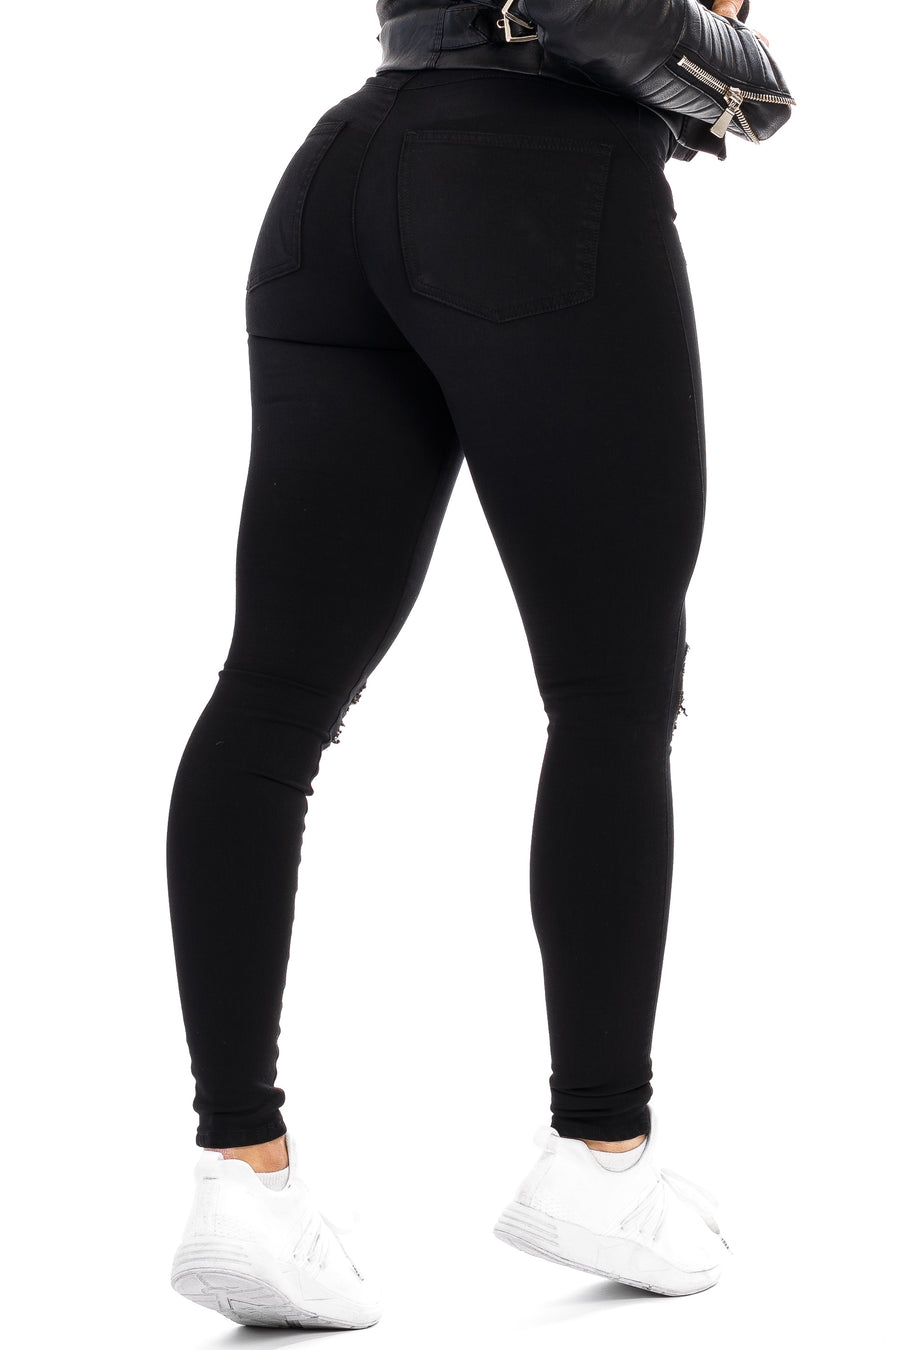 Womens Ripped 360 Fitjeans - Black